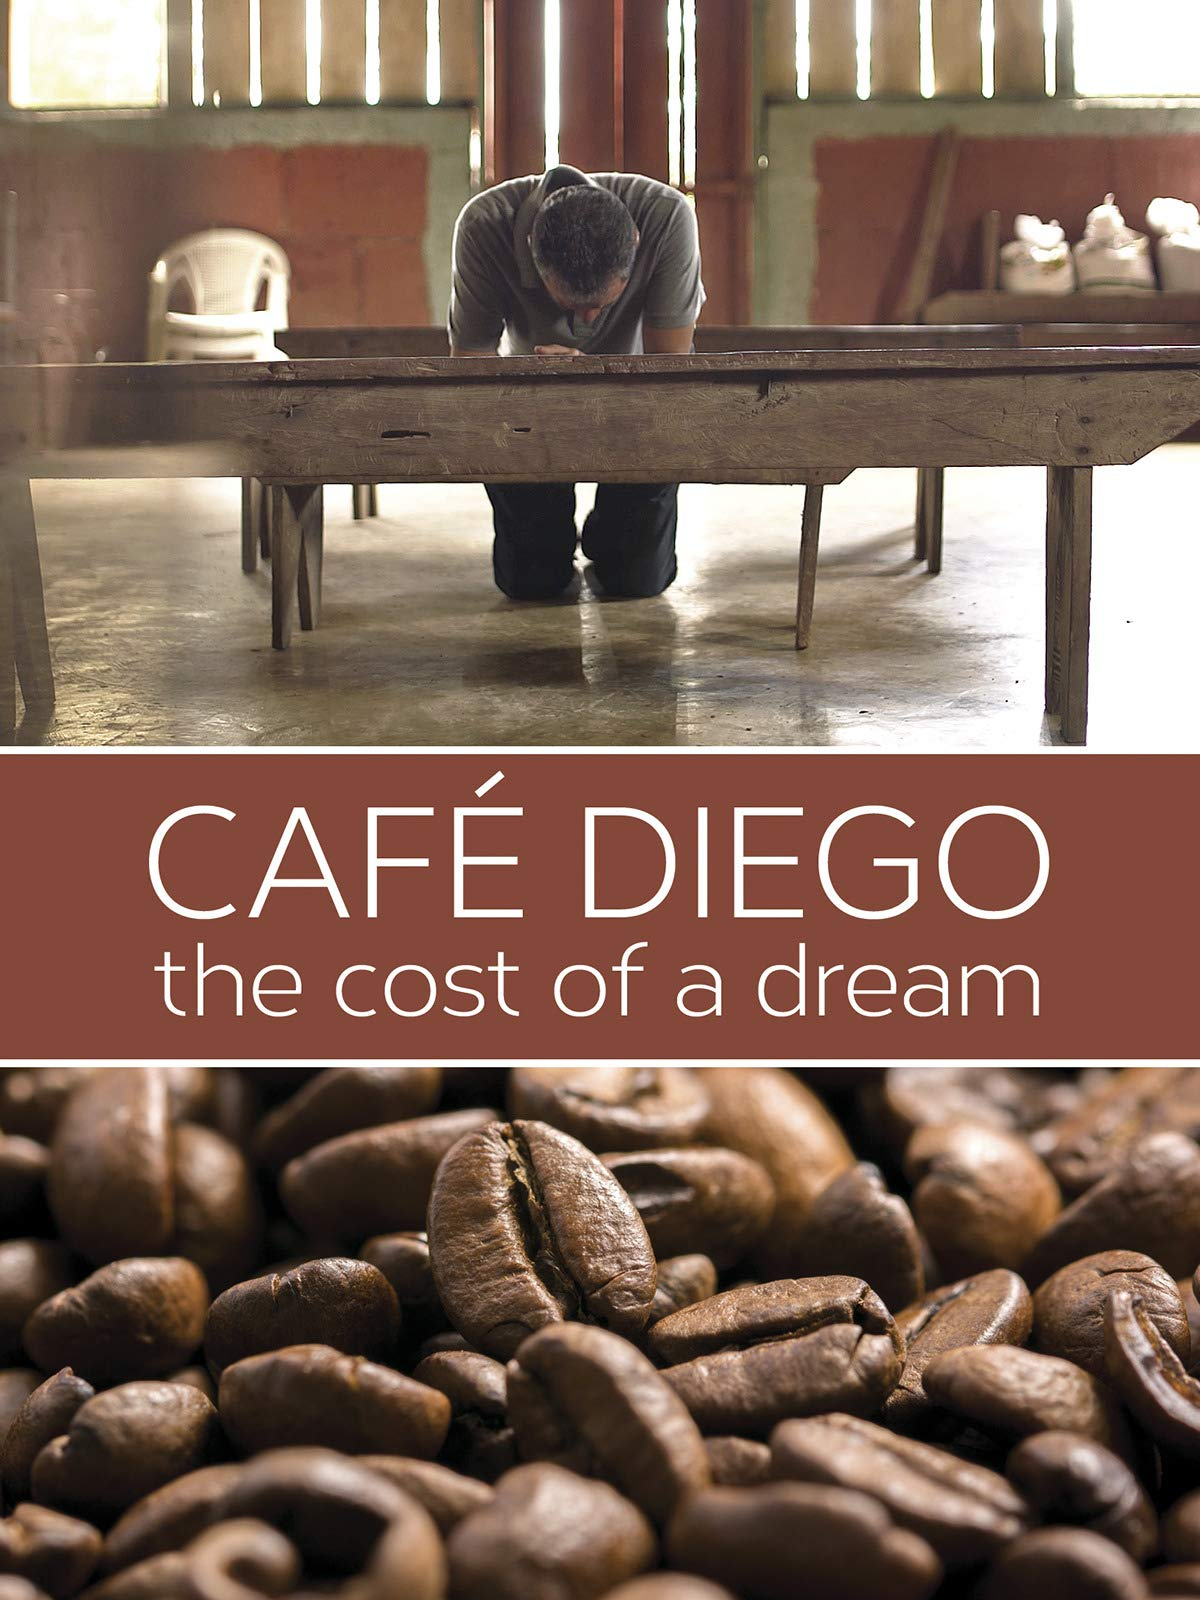 Cafe Diego - The Cost of a Dream